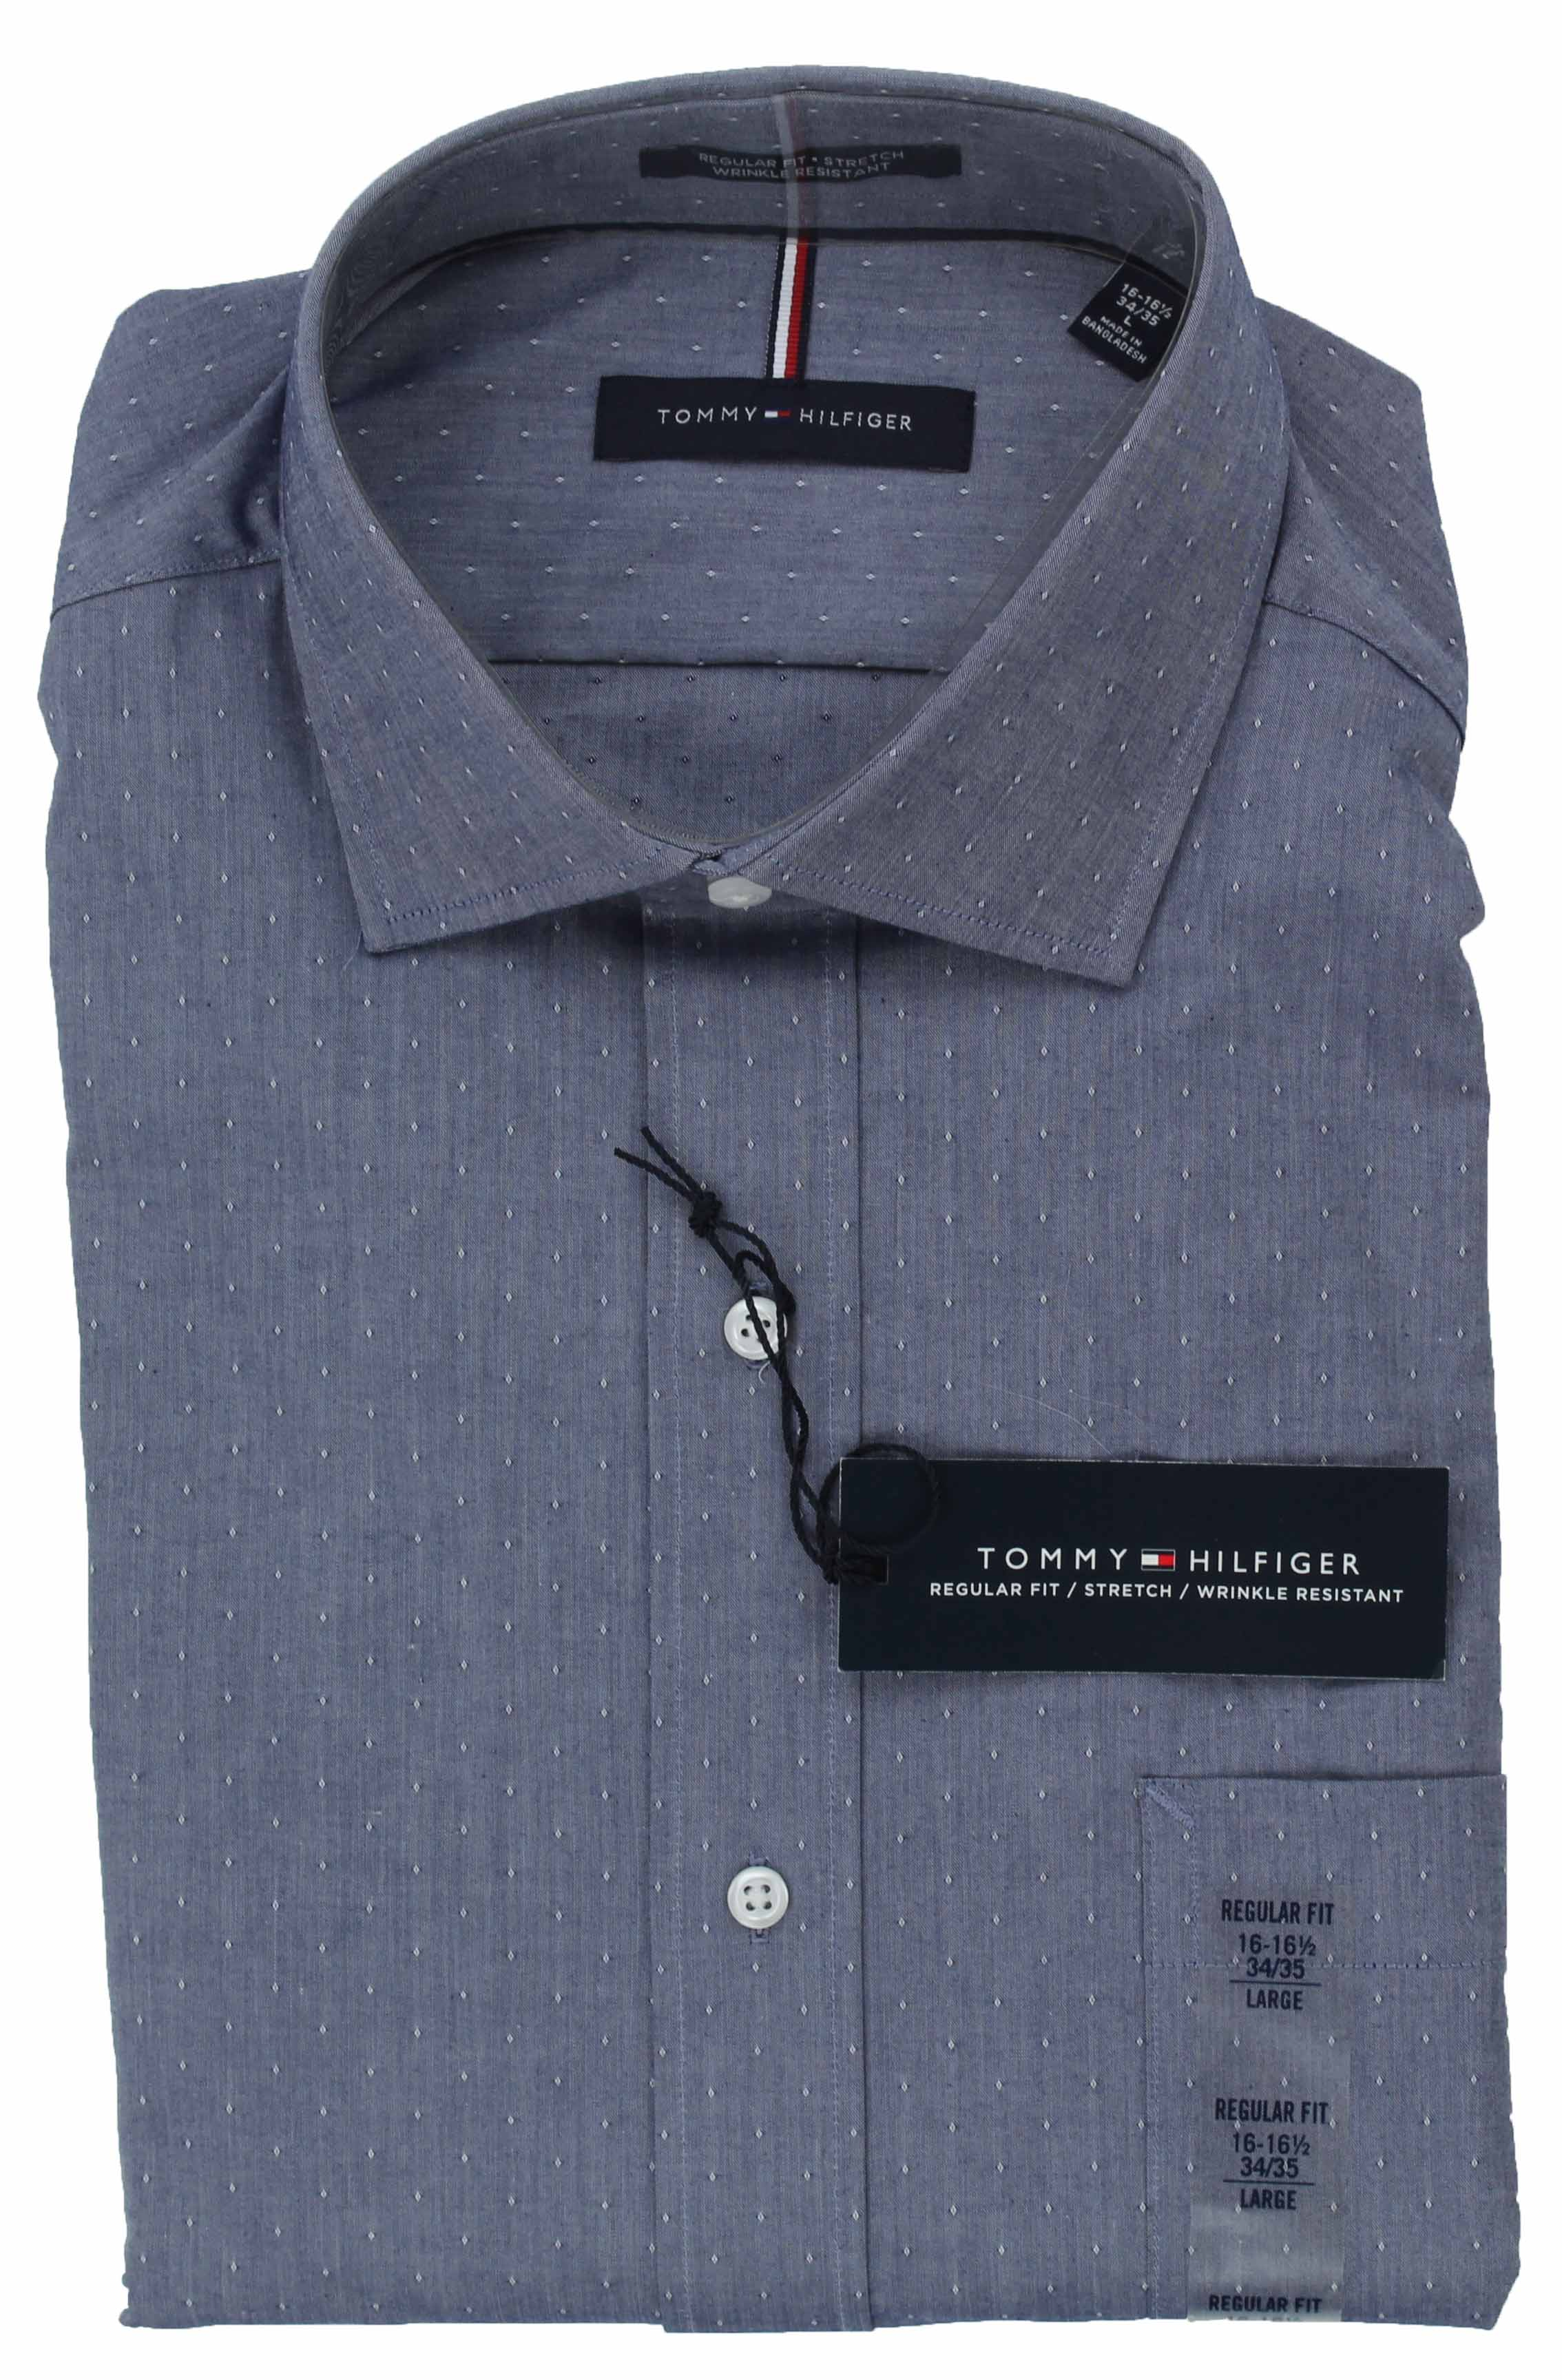 Tommy-Hilfiger-Mens-Long-Sleeve-Regular-Fit-Dress-Shirt miniature 27